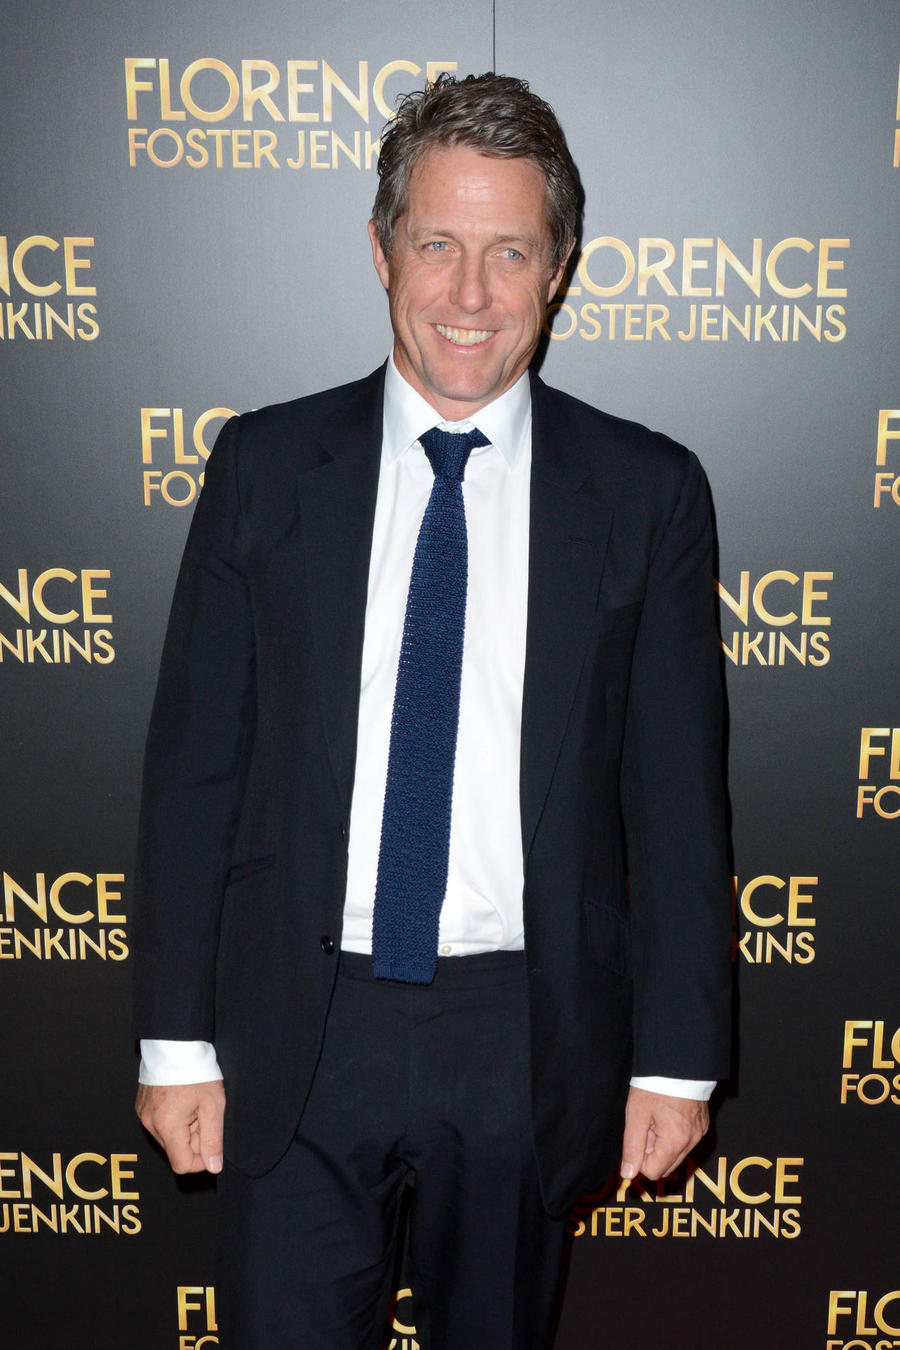 Hugh Grant's Sudden Stage Fright Left Him Fumbling And Mumbling On Movie Sets